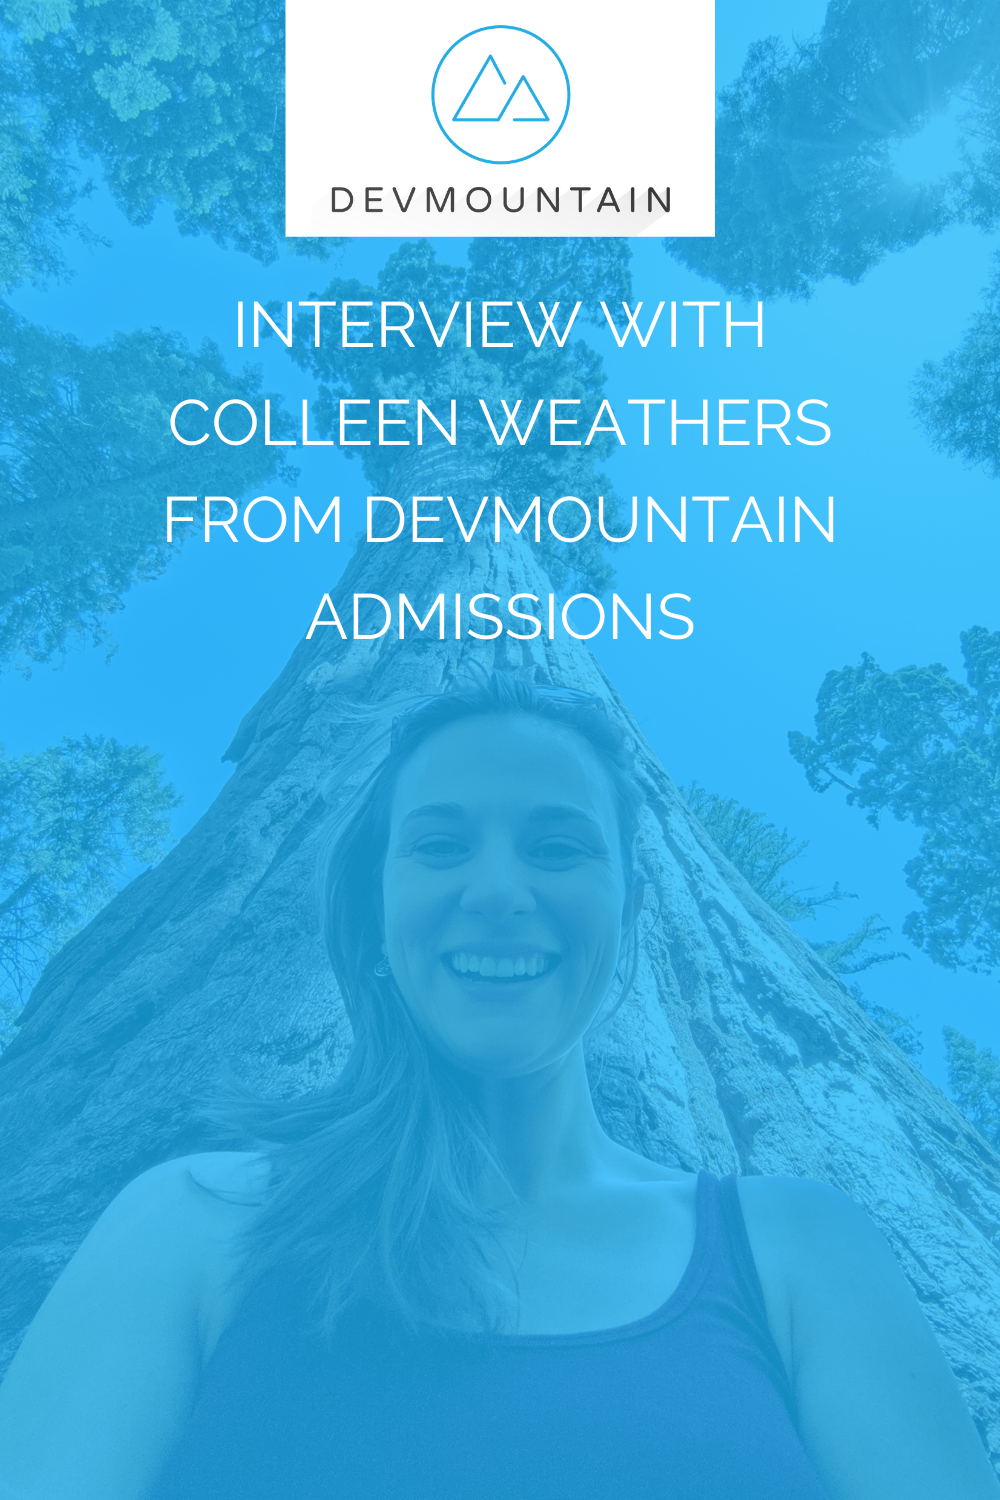 Interview with Colleen Weathers from Devmountain Admissions